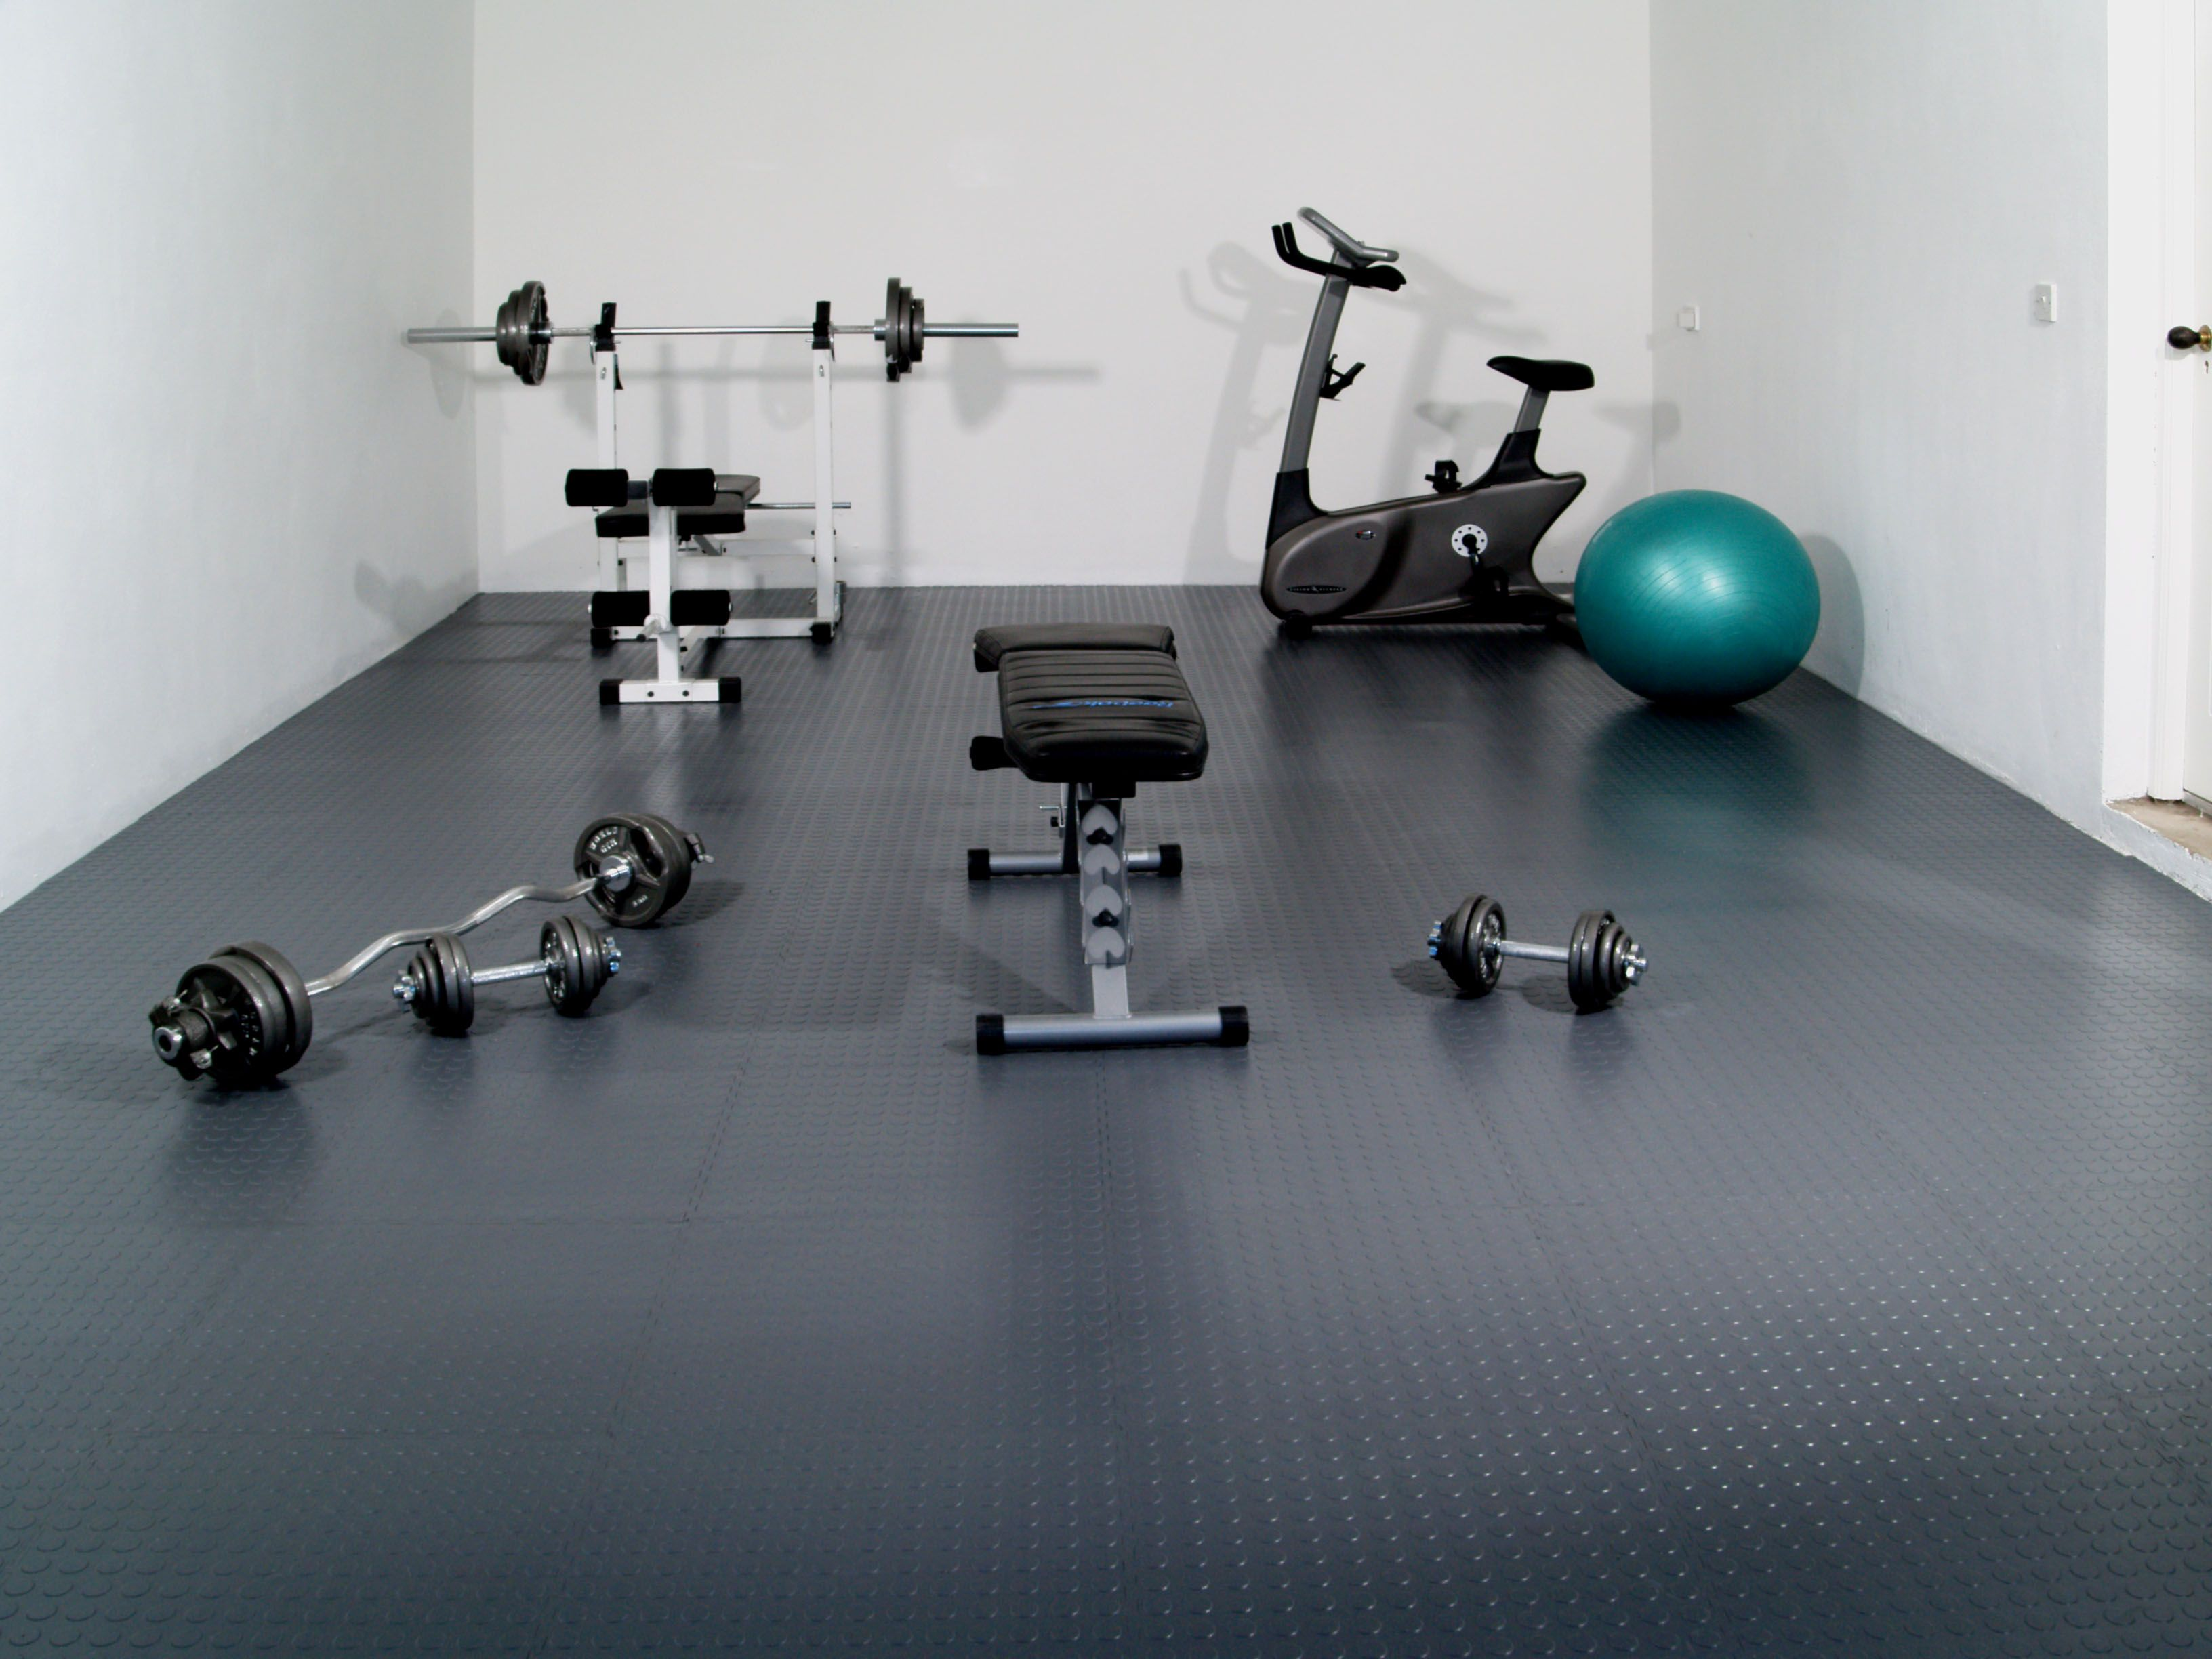 Exclusive home gym flooring home gym equipment pinterest gym ignore the gym gear but this is the perfect hard tough lock flooring tiles im getting for the garage doublecrazyfo Choice Image